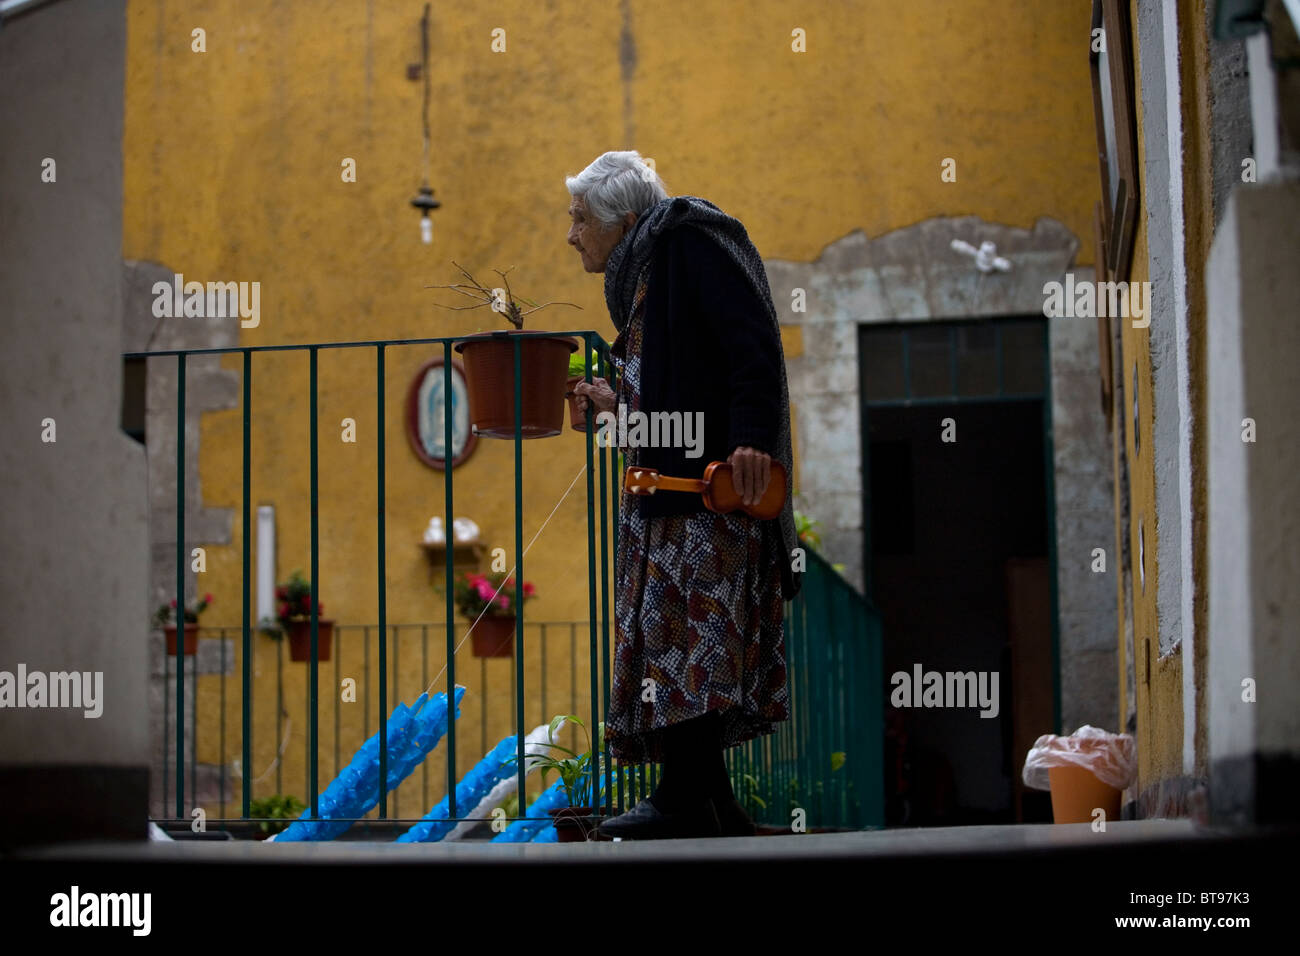 Isabel Alarcon, 99, walks in Our Lady of Guadalupe Home for the Elderly, Mexico City, September 27, 2010. - Stock Image